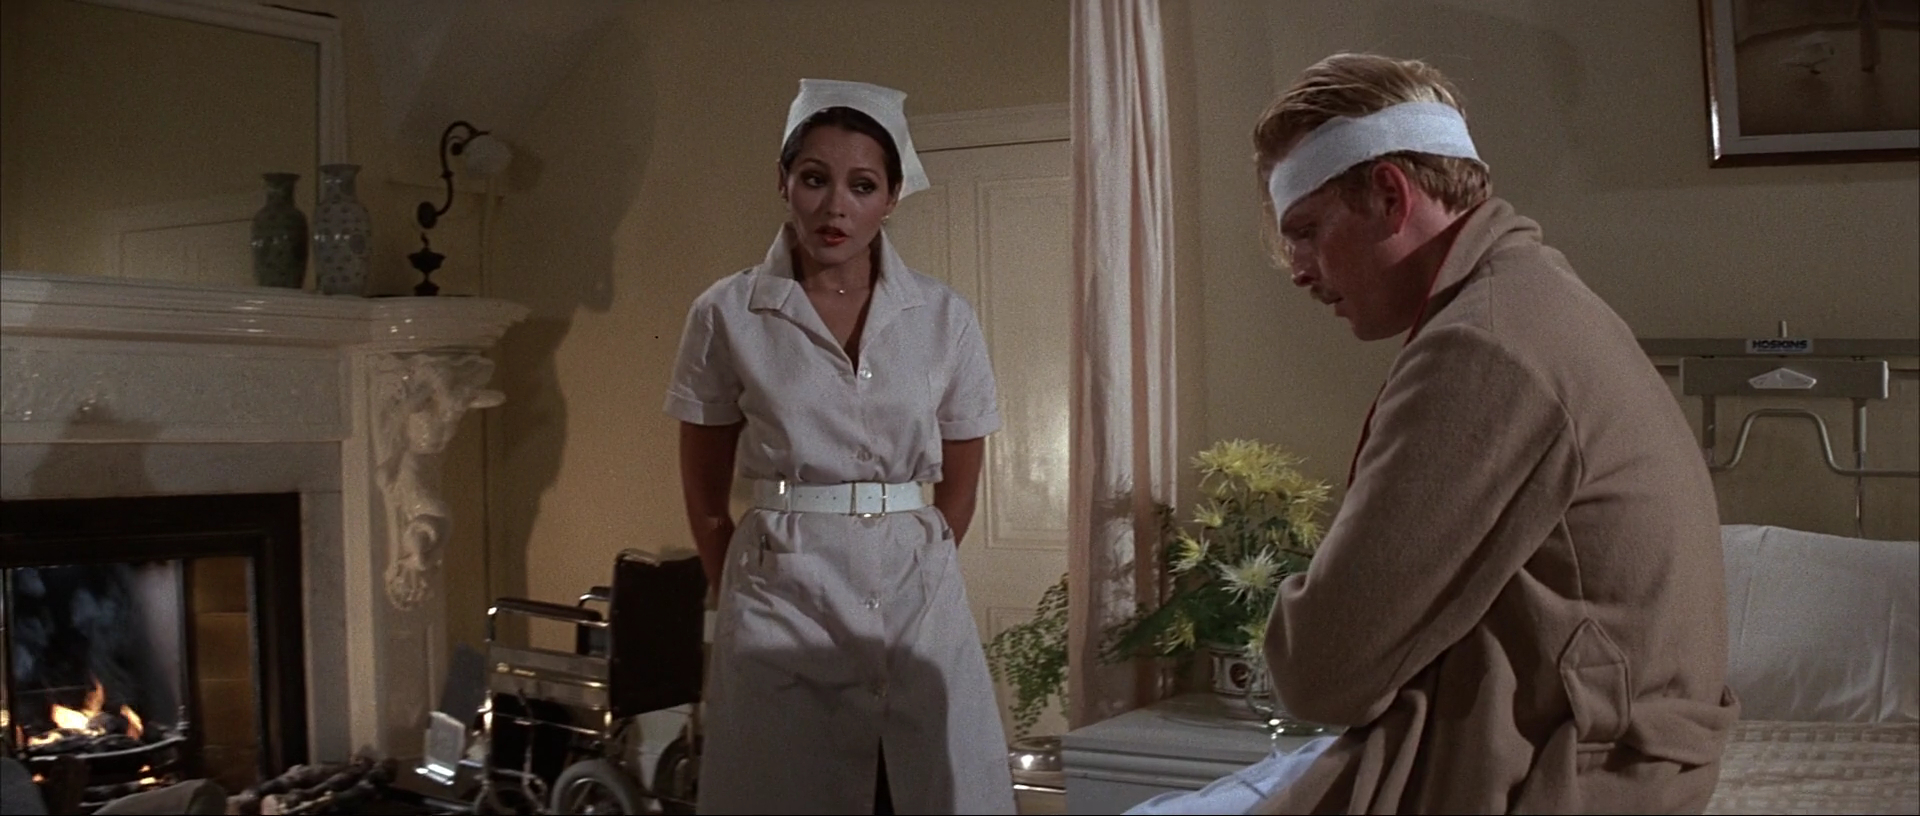 Image result for Fatima blush nurse